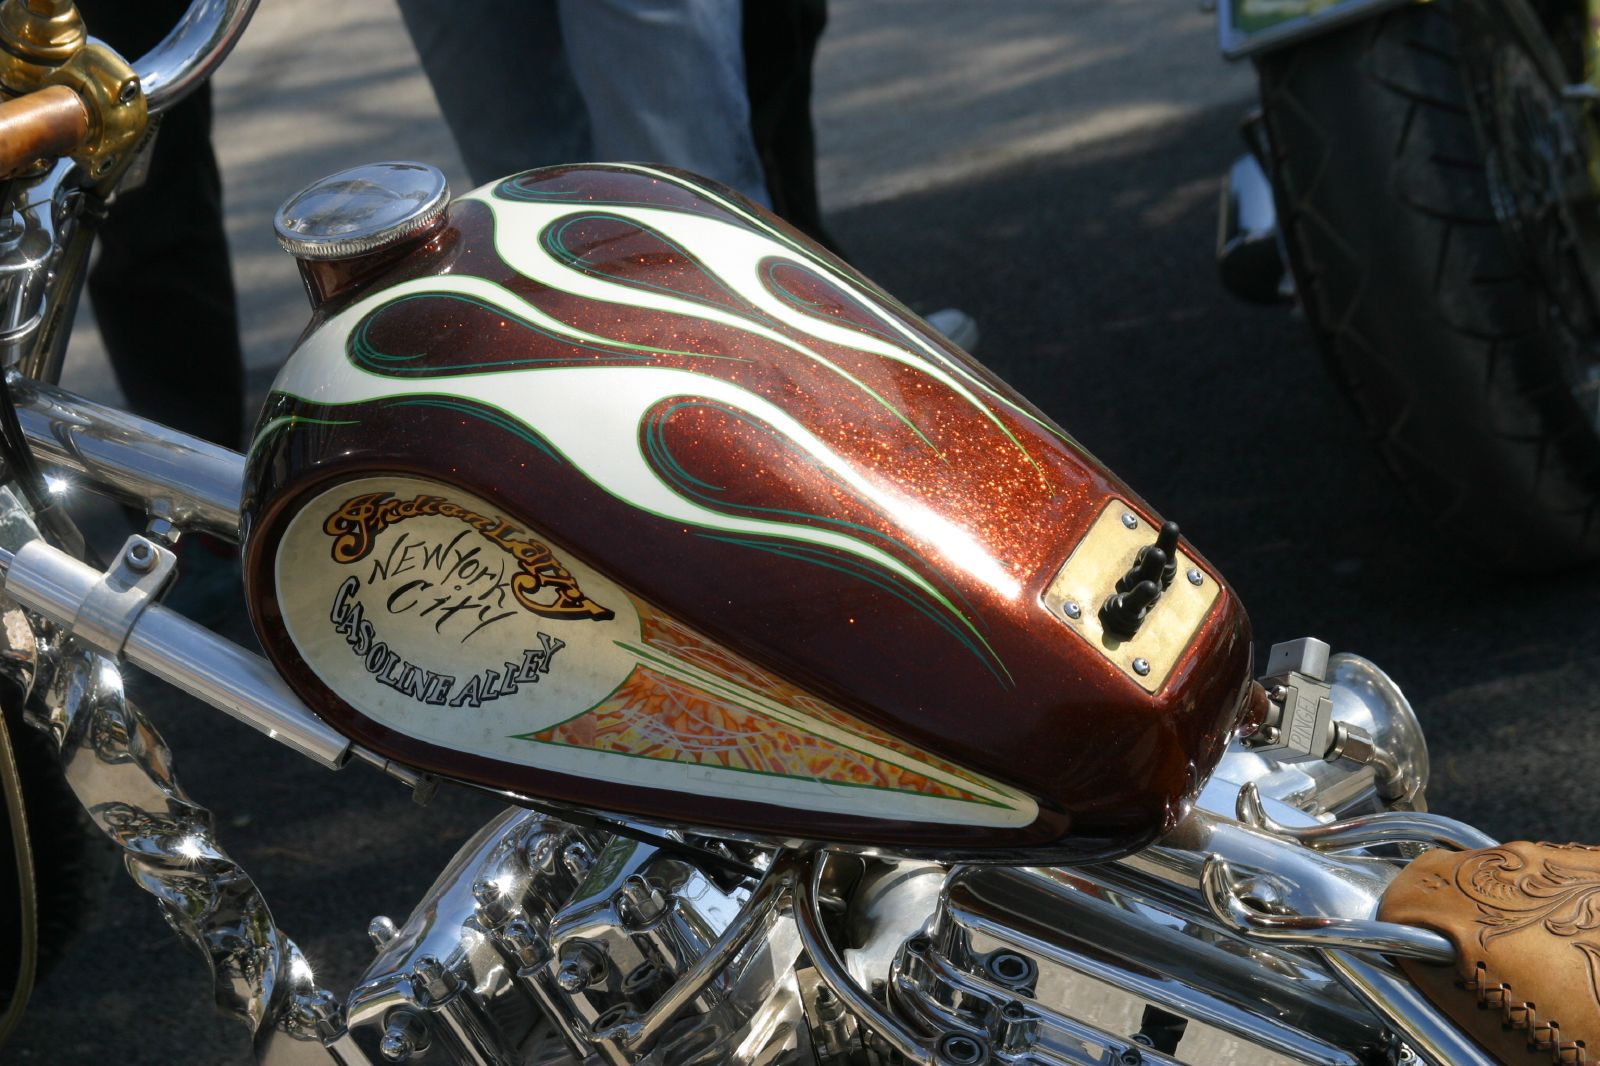 File:Detail of Indian Larry's Wild Child bike.jpg - Wikimedia Commons